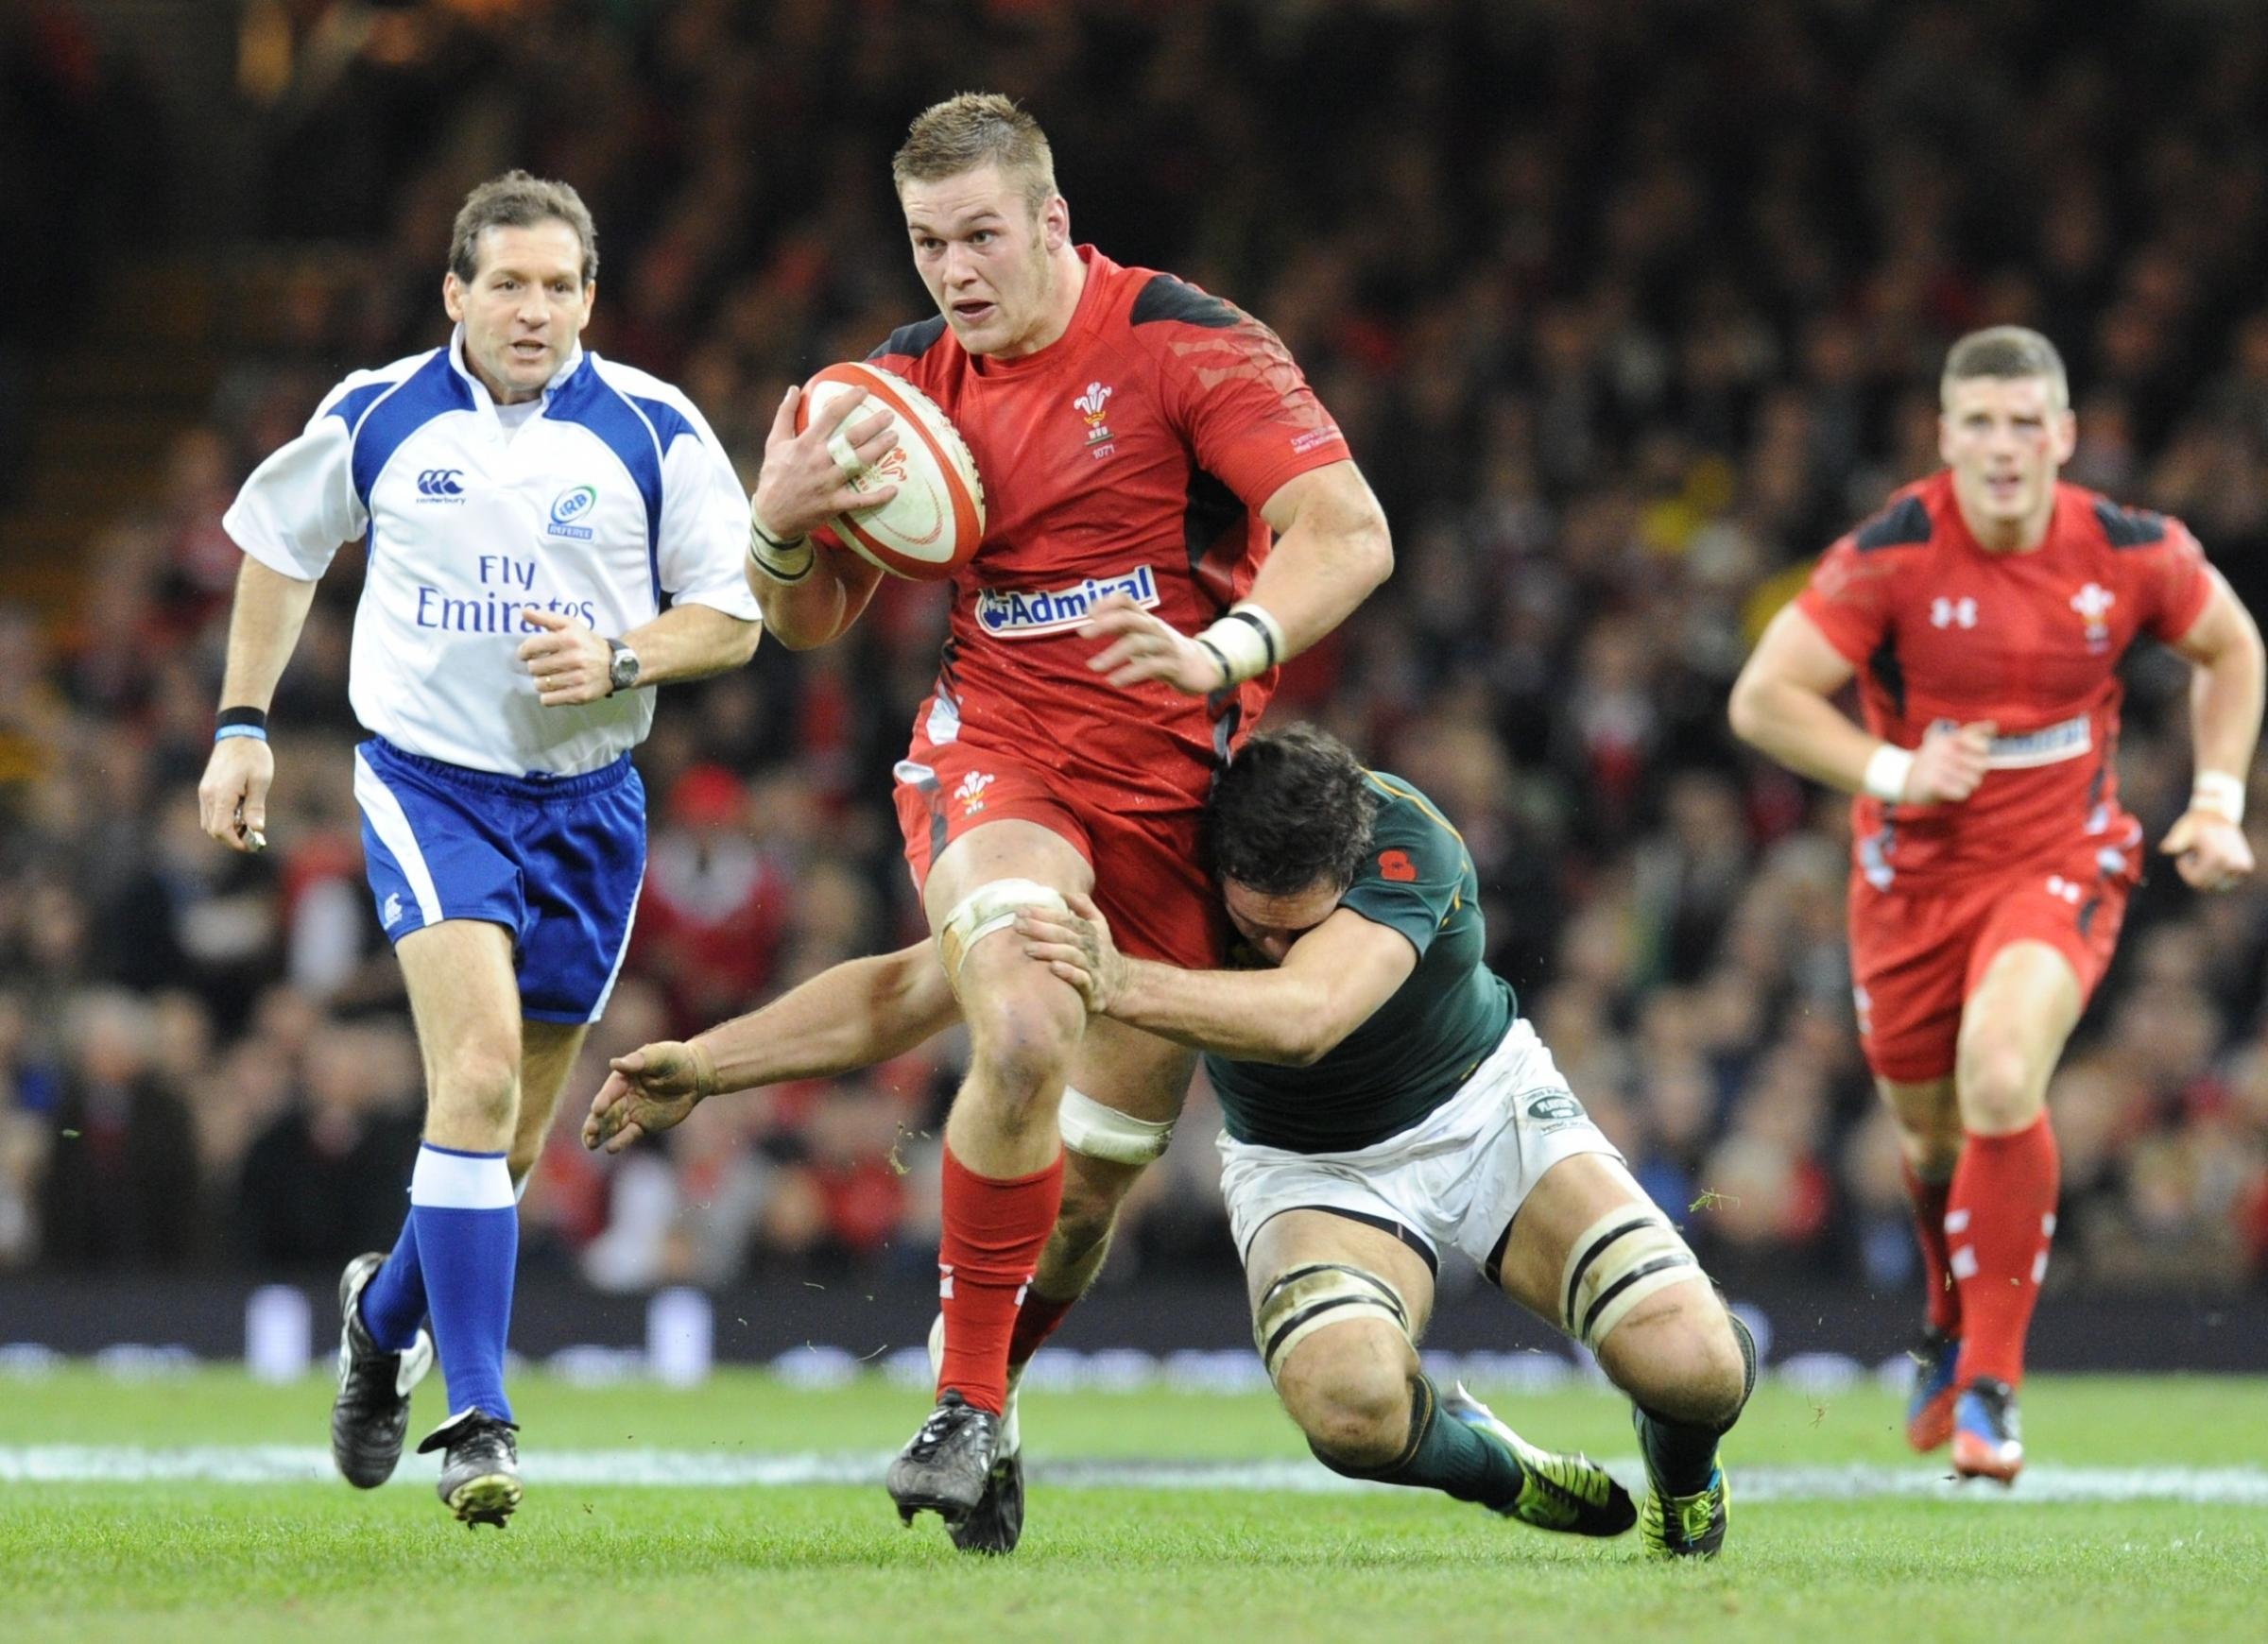 Dan Lydiate is tackled by Francois Louw (2397191)